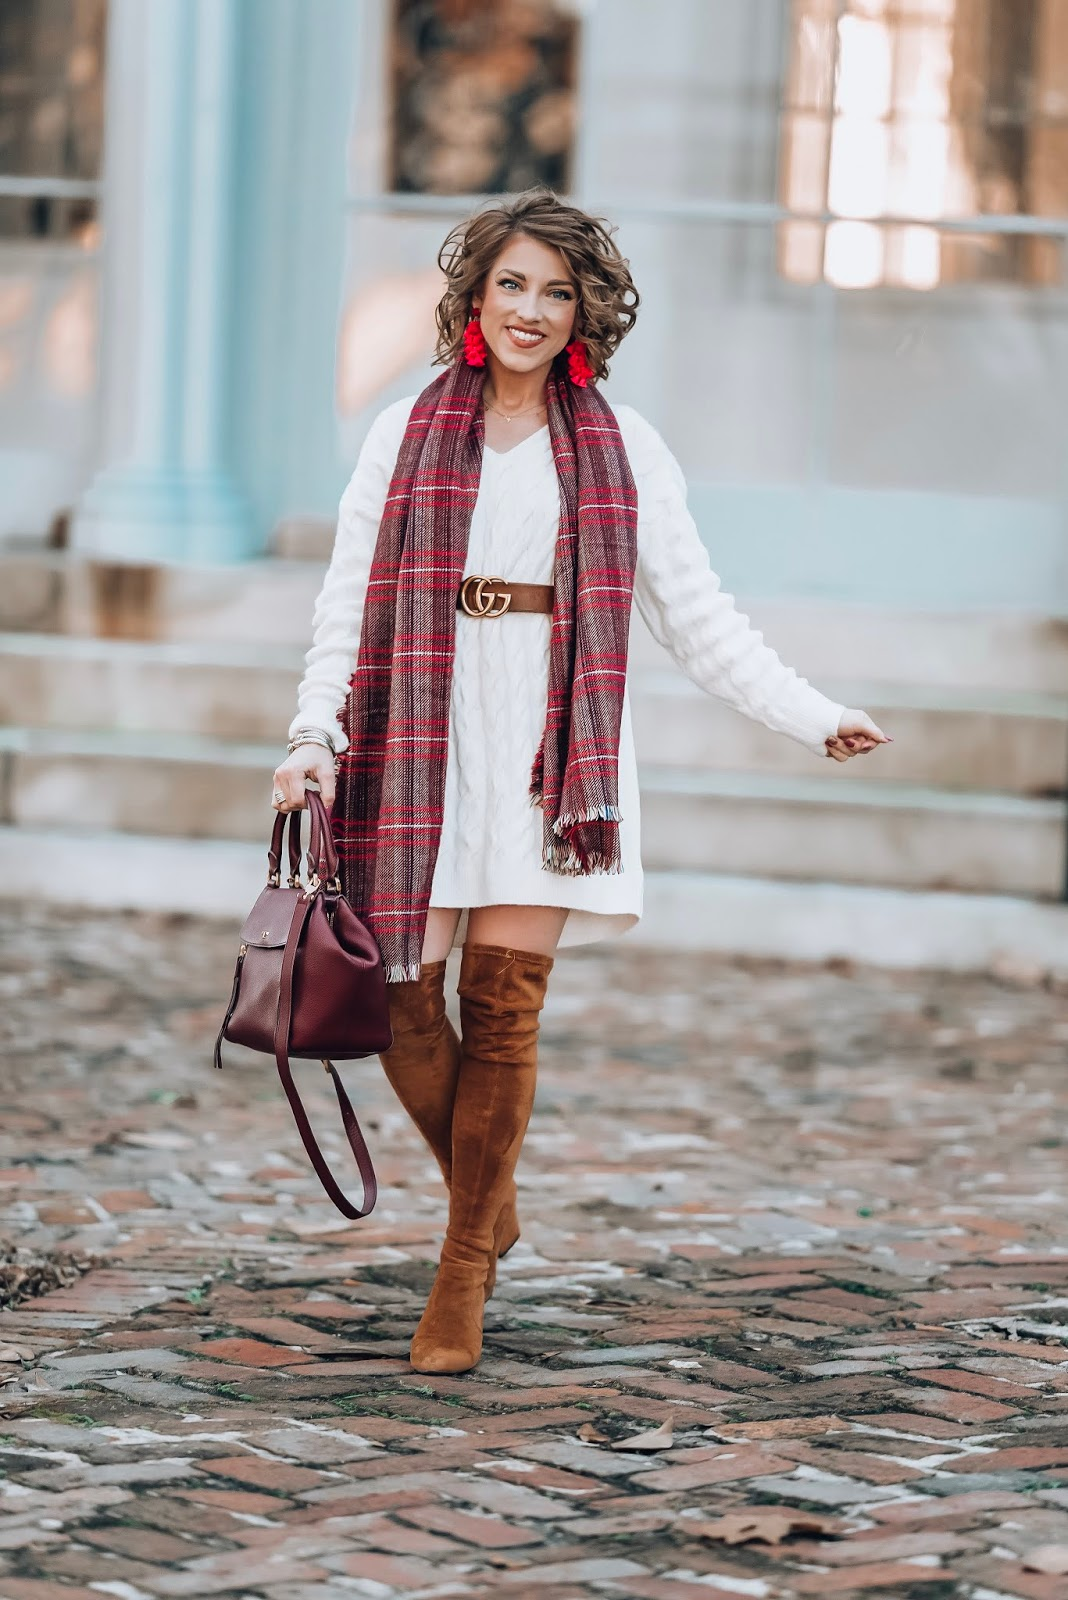 White Cable Knit Sweater Dress - Something Delightful Blog